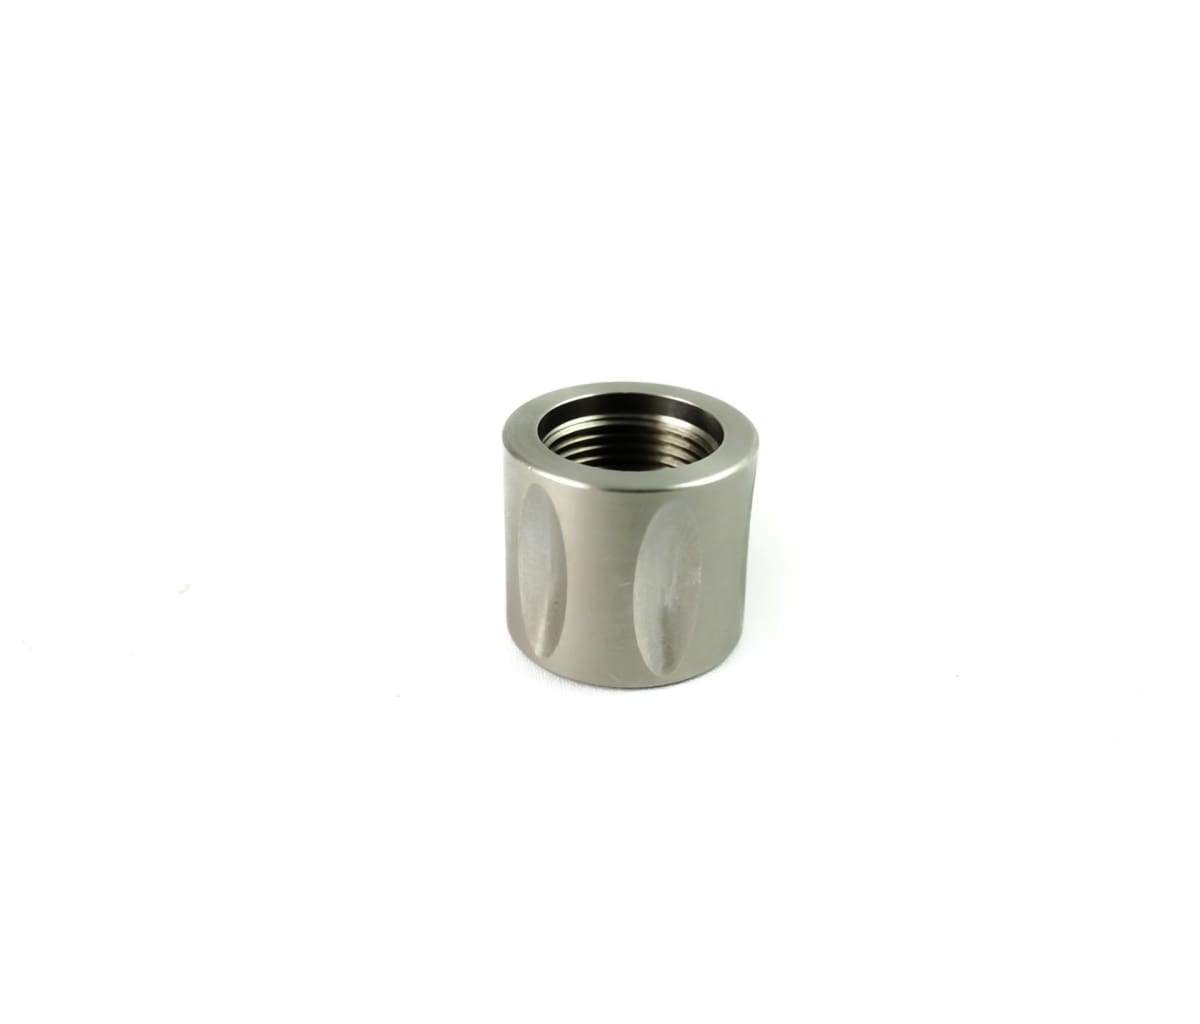 9mm stainless steel thread protector